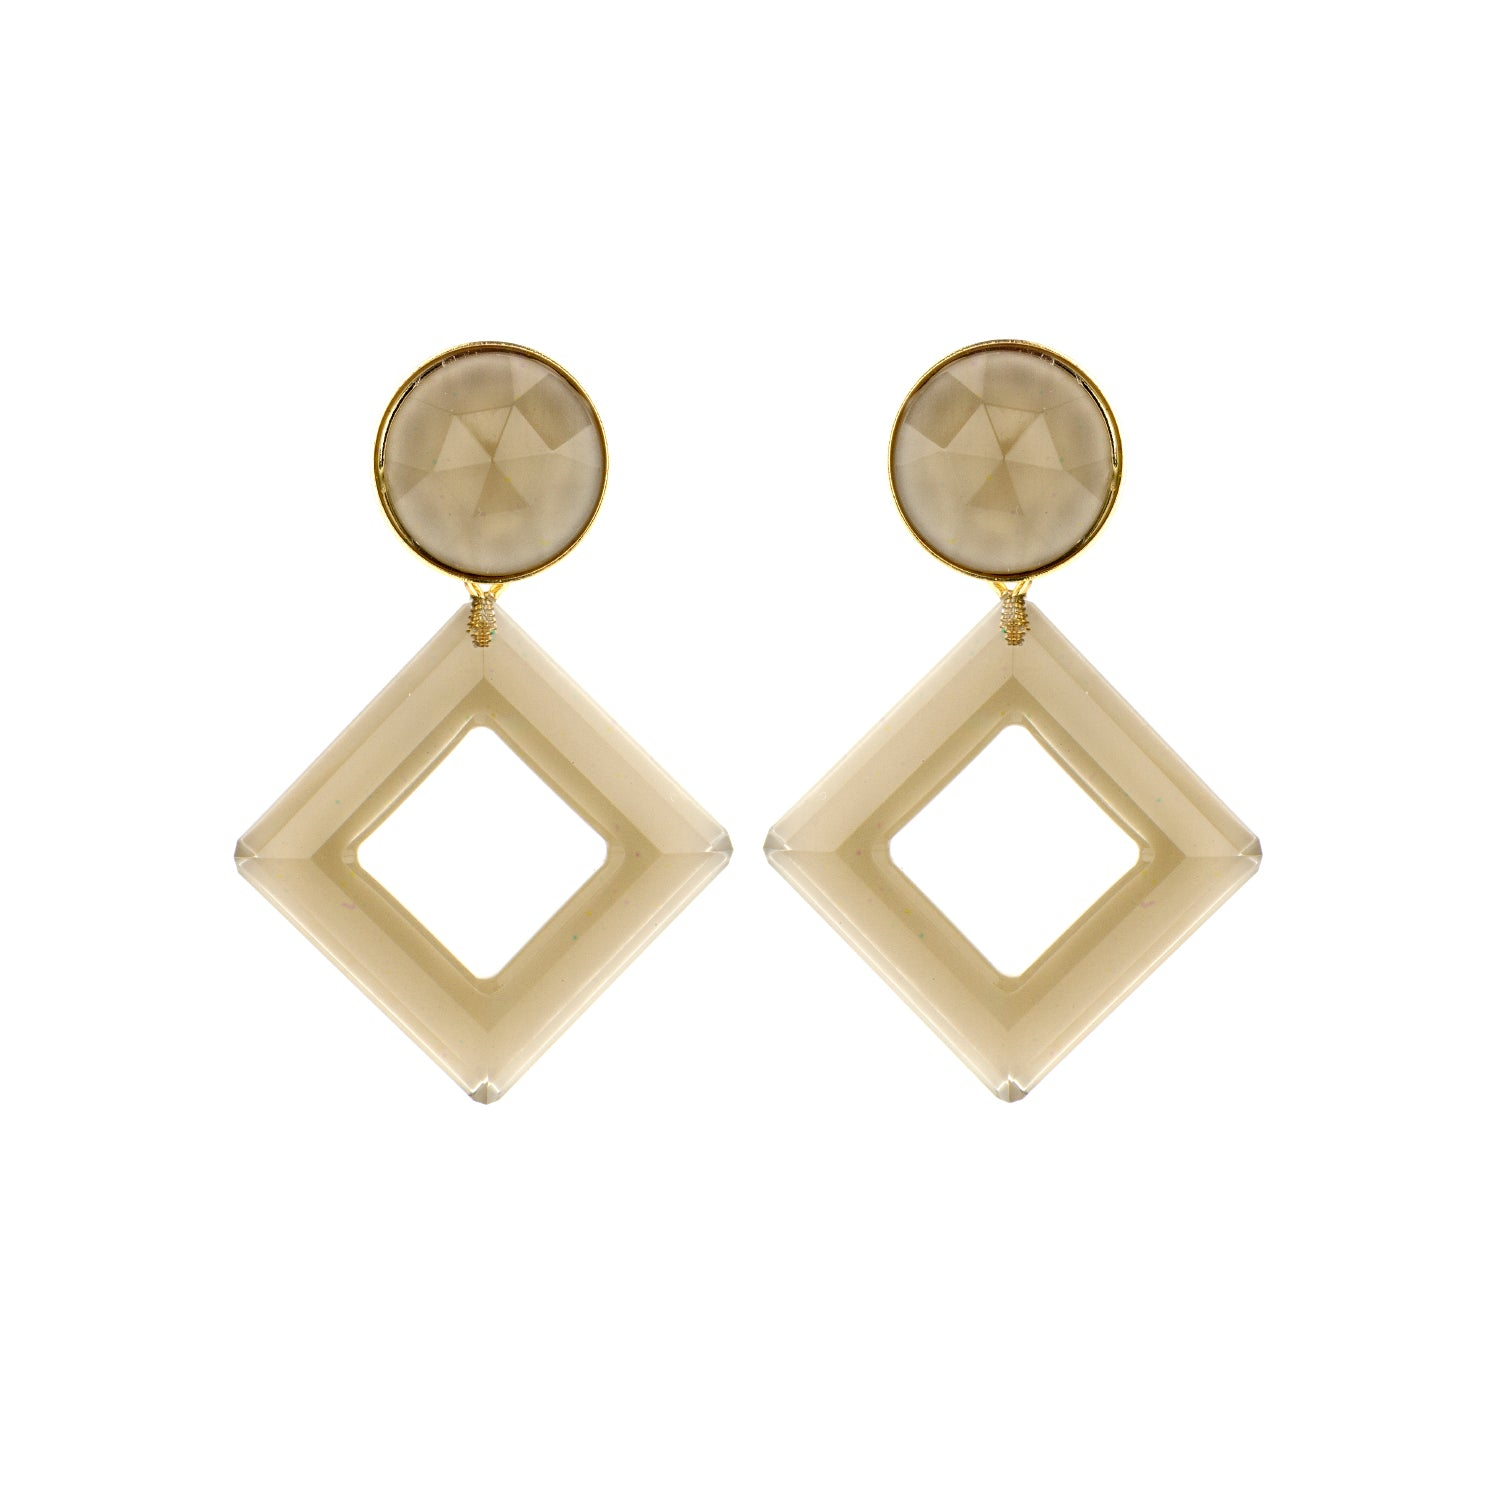 Jacky light taupe earrings